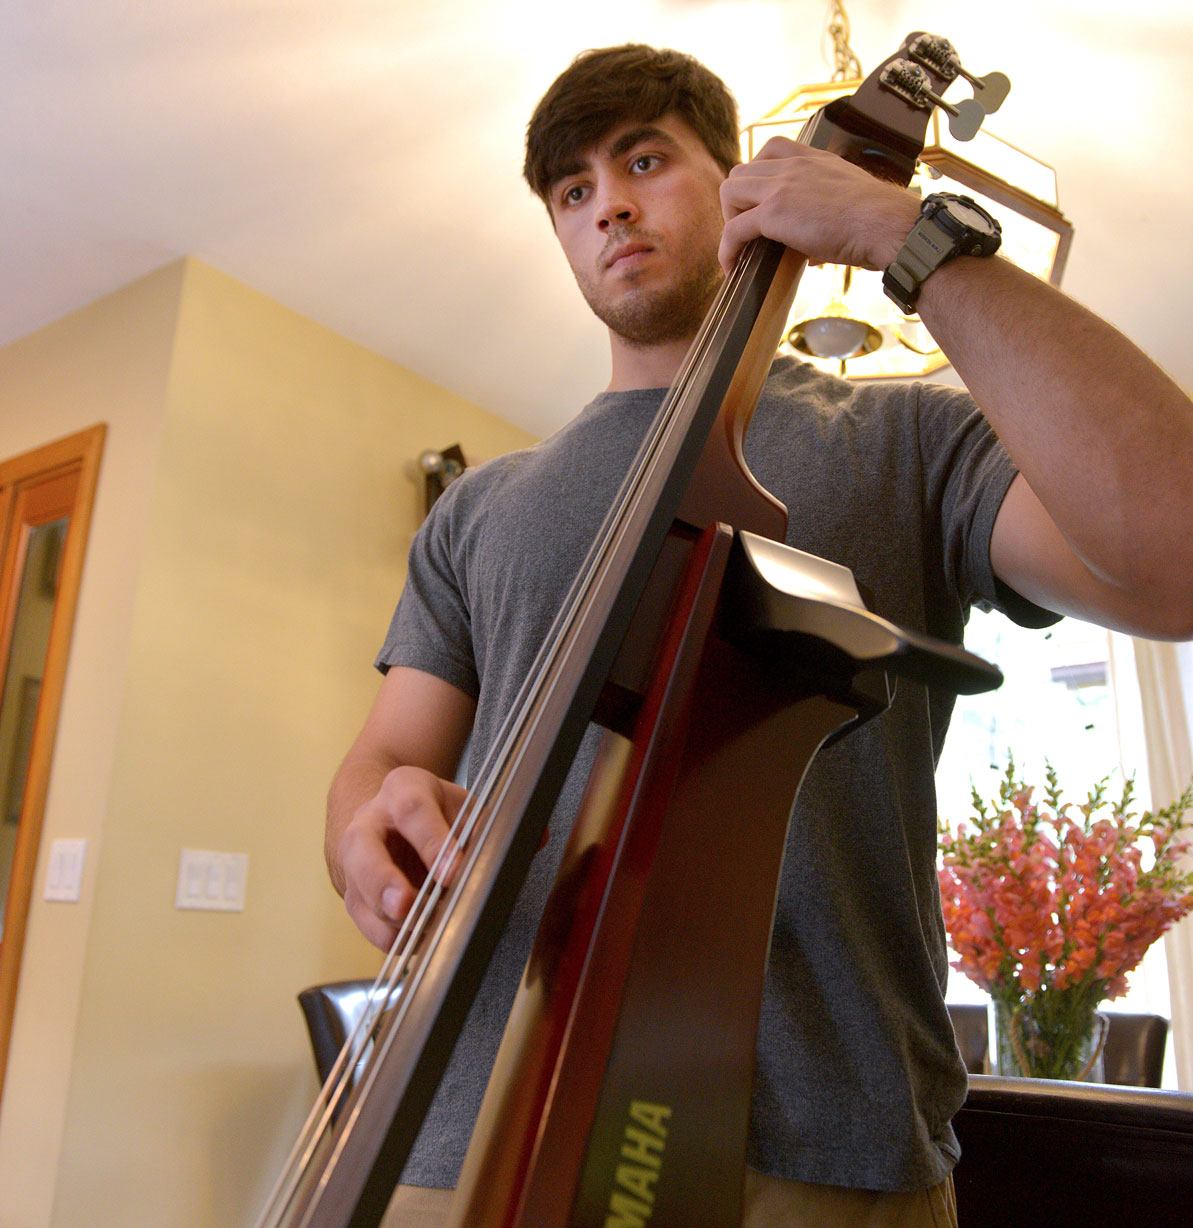 David Dubchak plays upright bass in the family band.